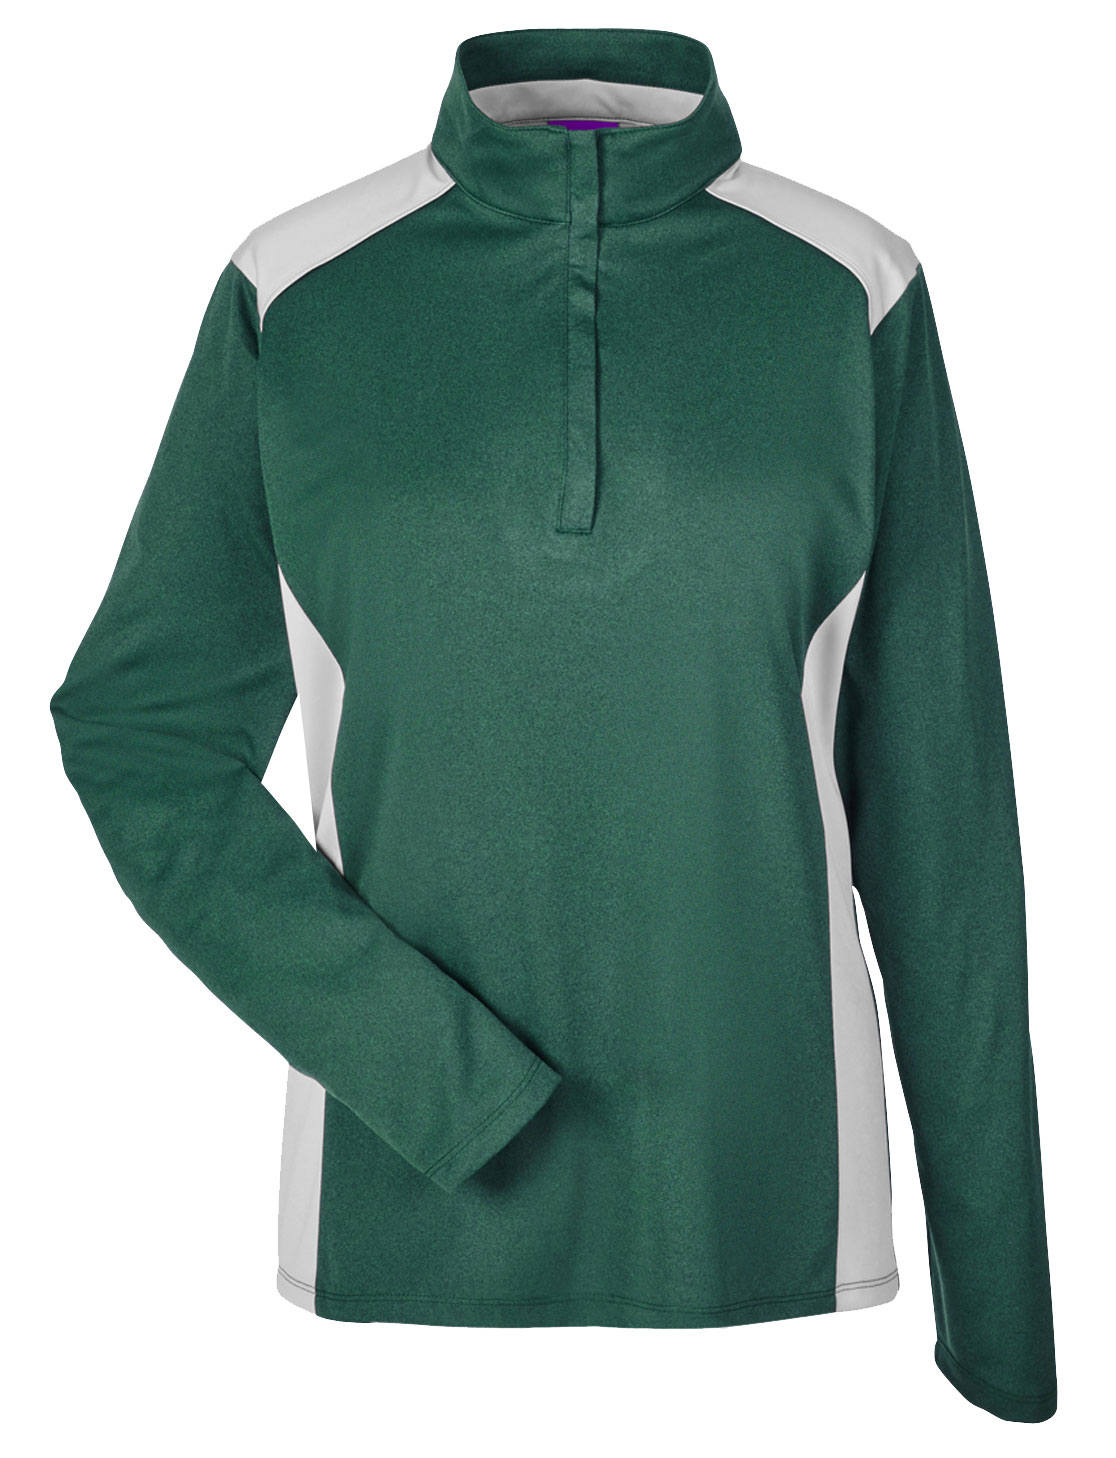 Team 365 Ladies Excel Melange Interlock  Performance Quarter-Zip Top